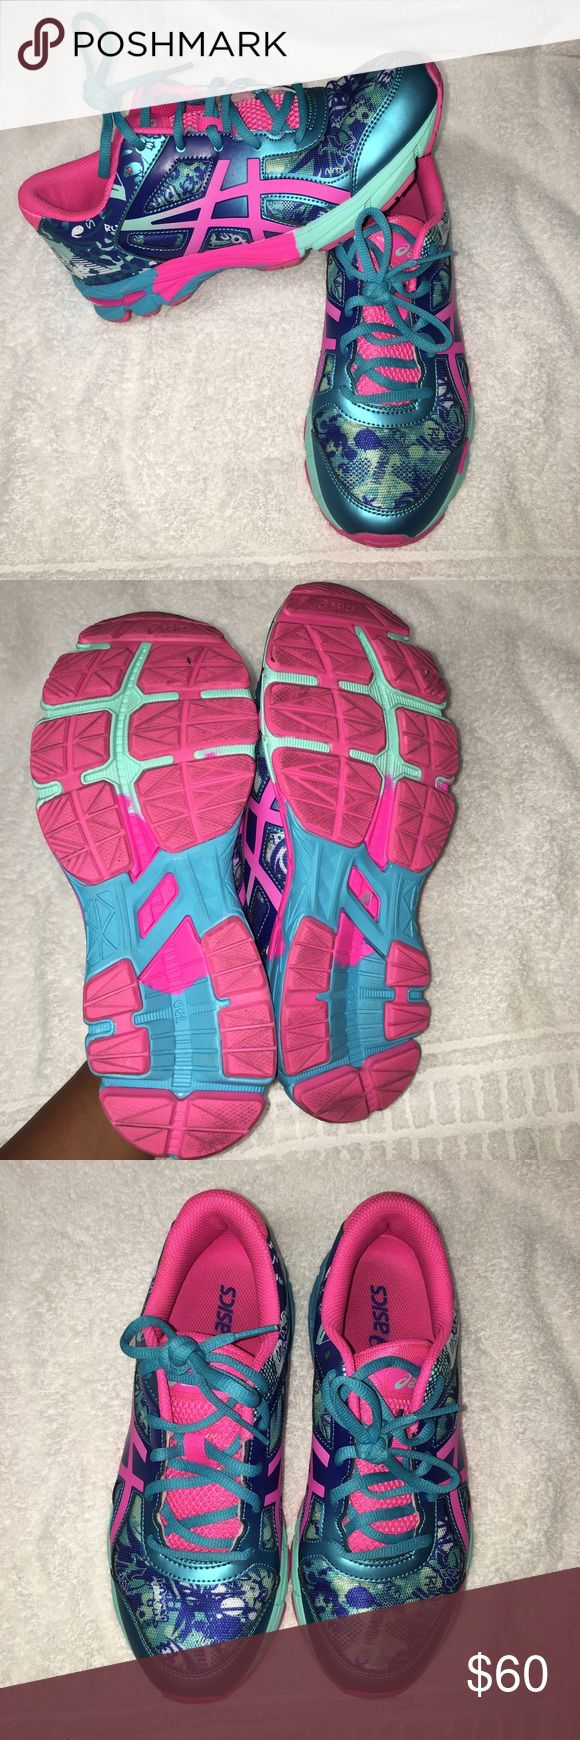 asics little girls shoes size 12